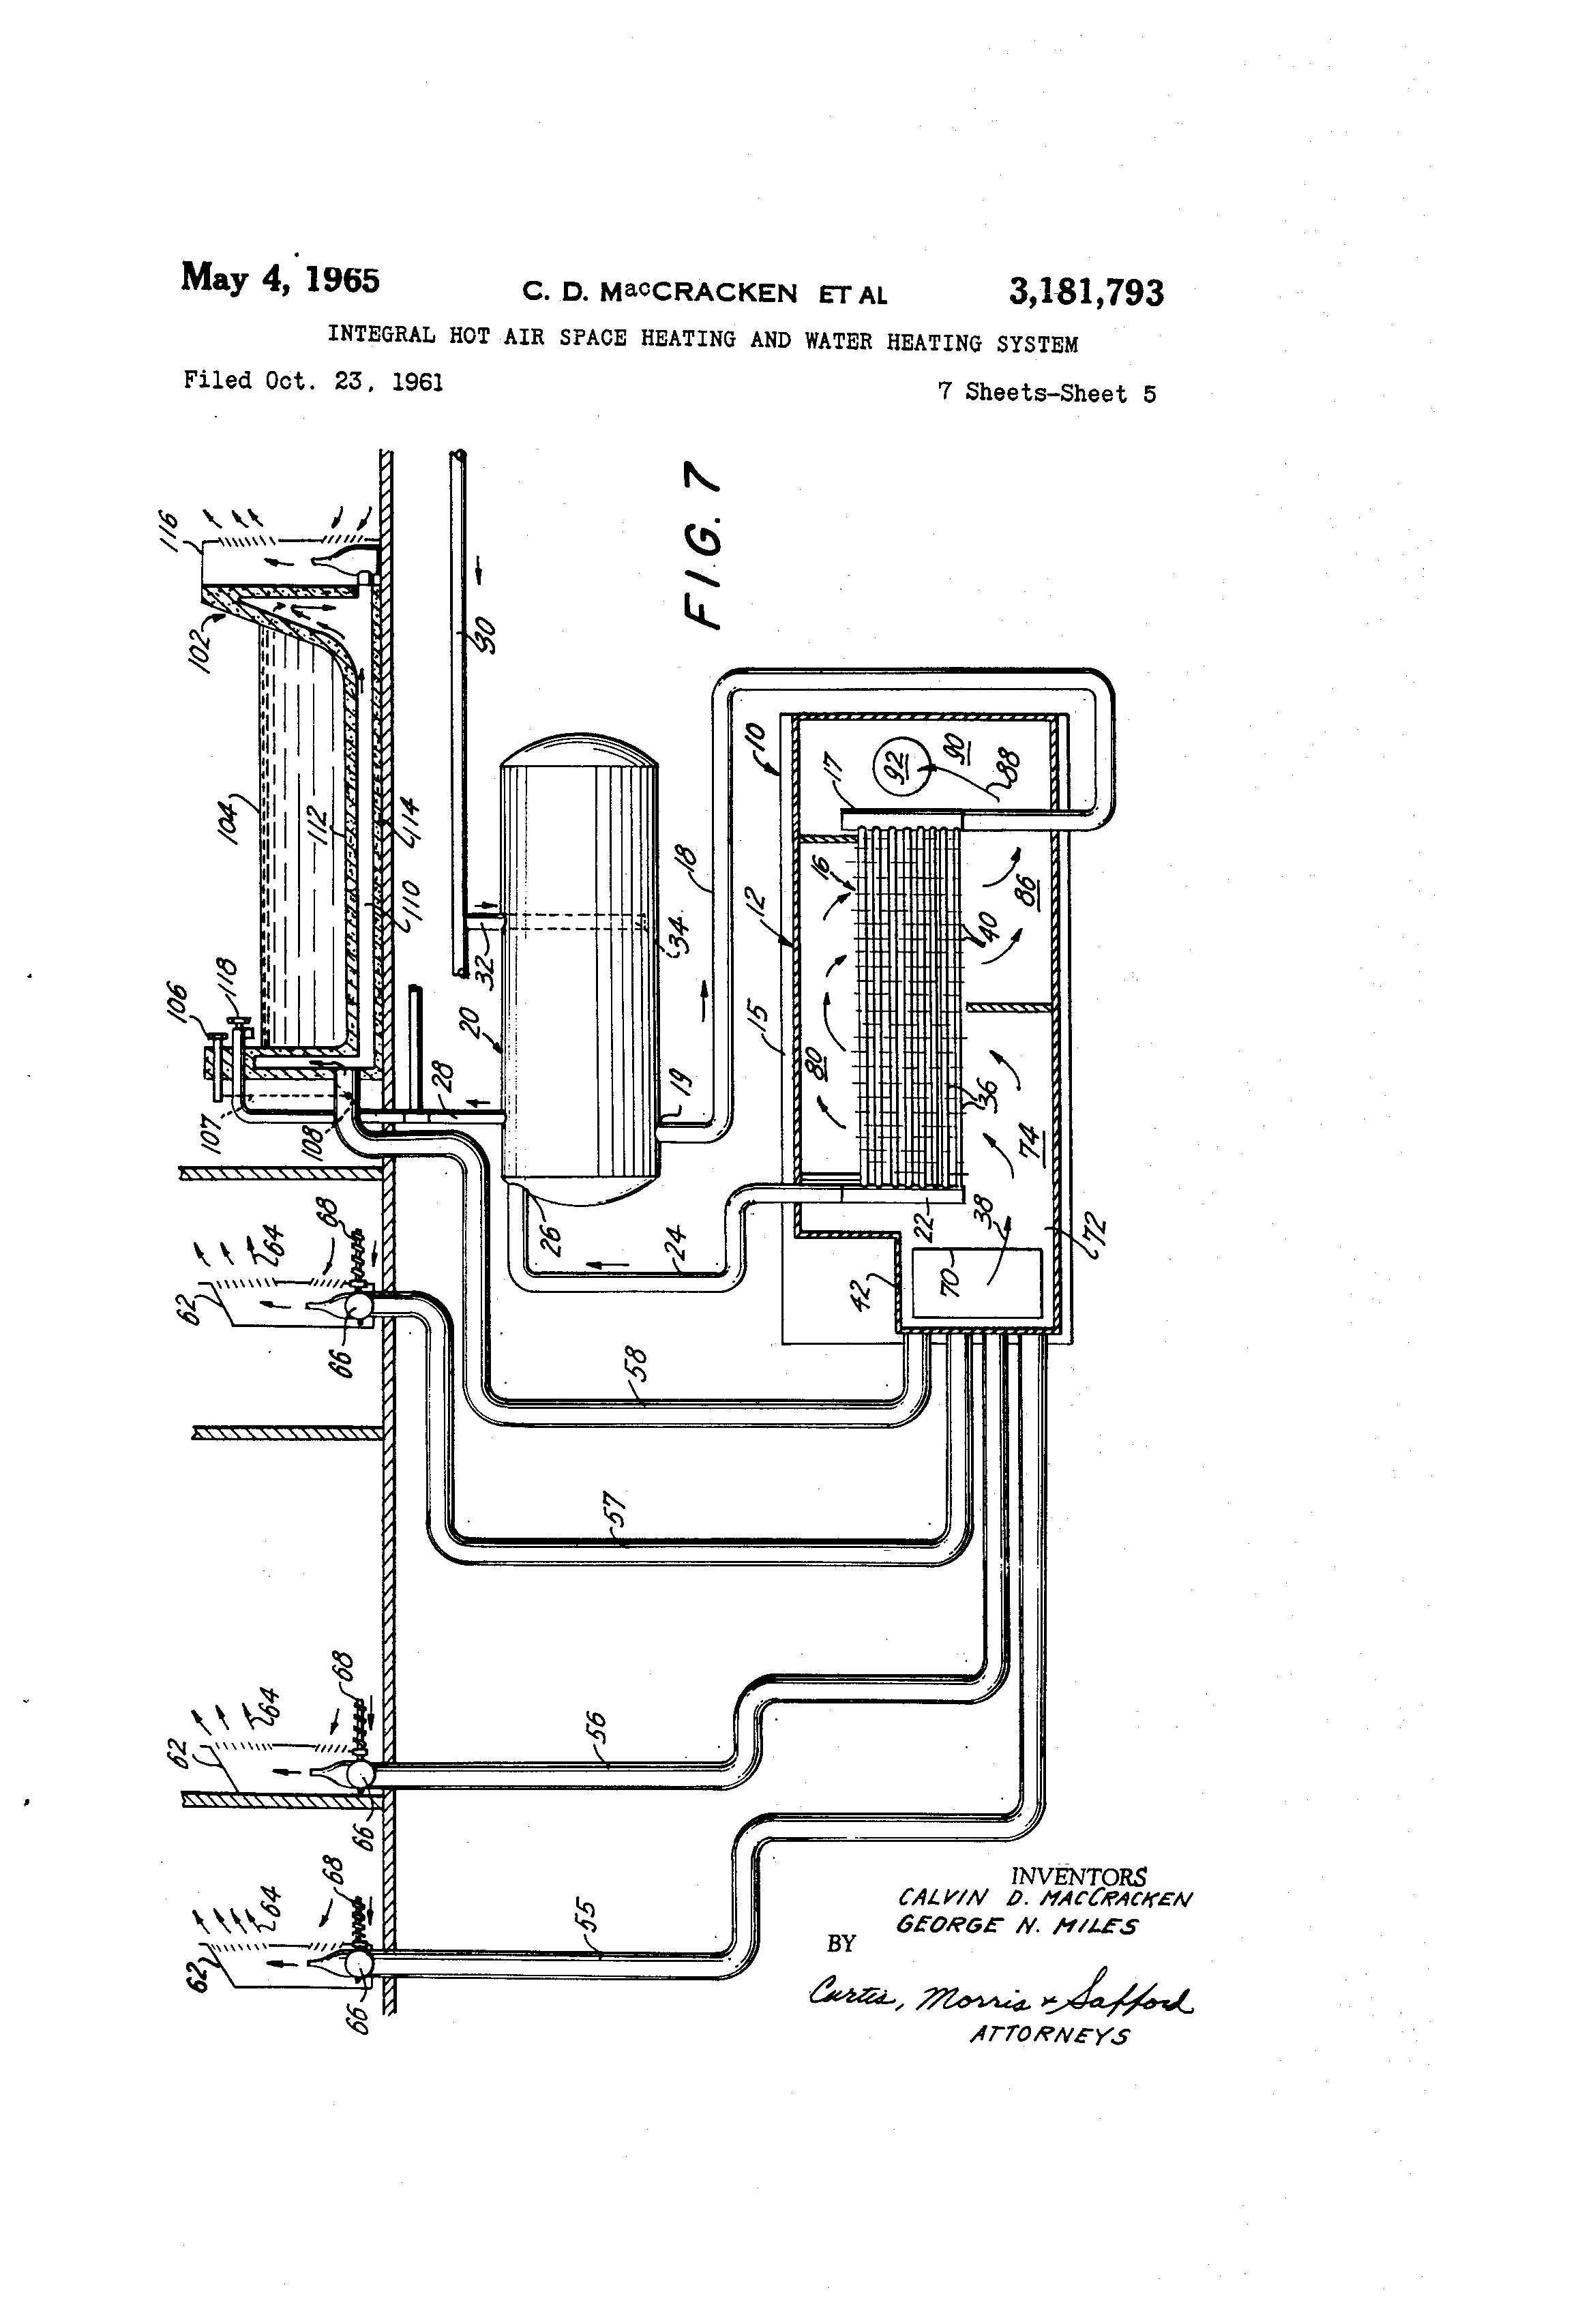 Patent Us3181793 Integral Hot Air Space Heating And